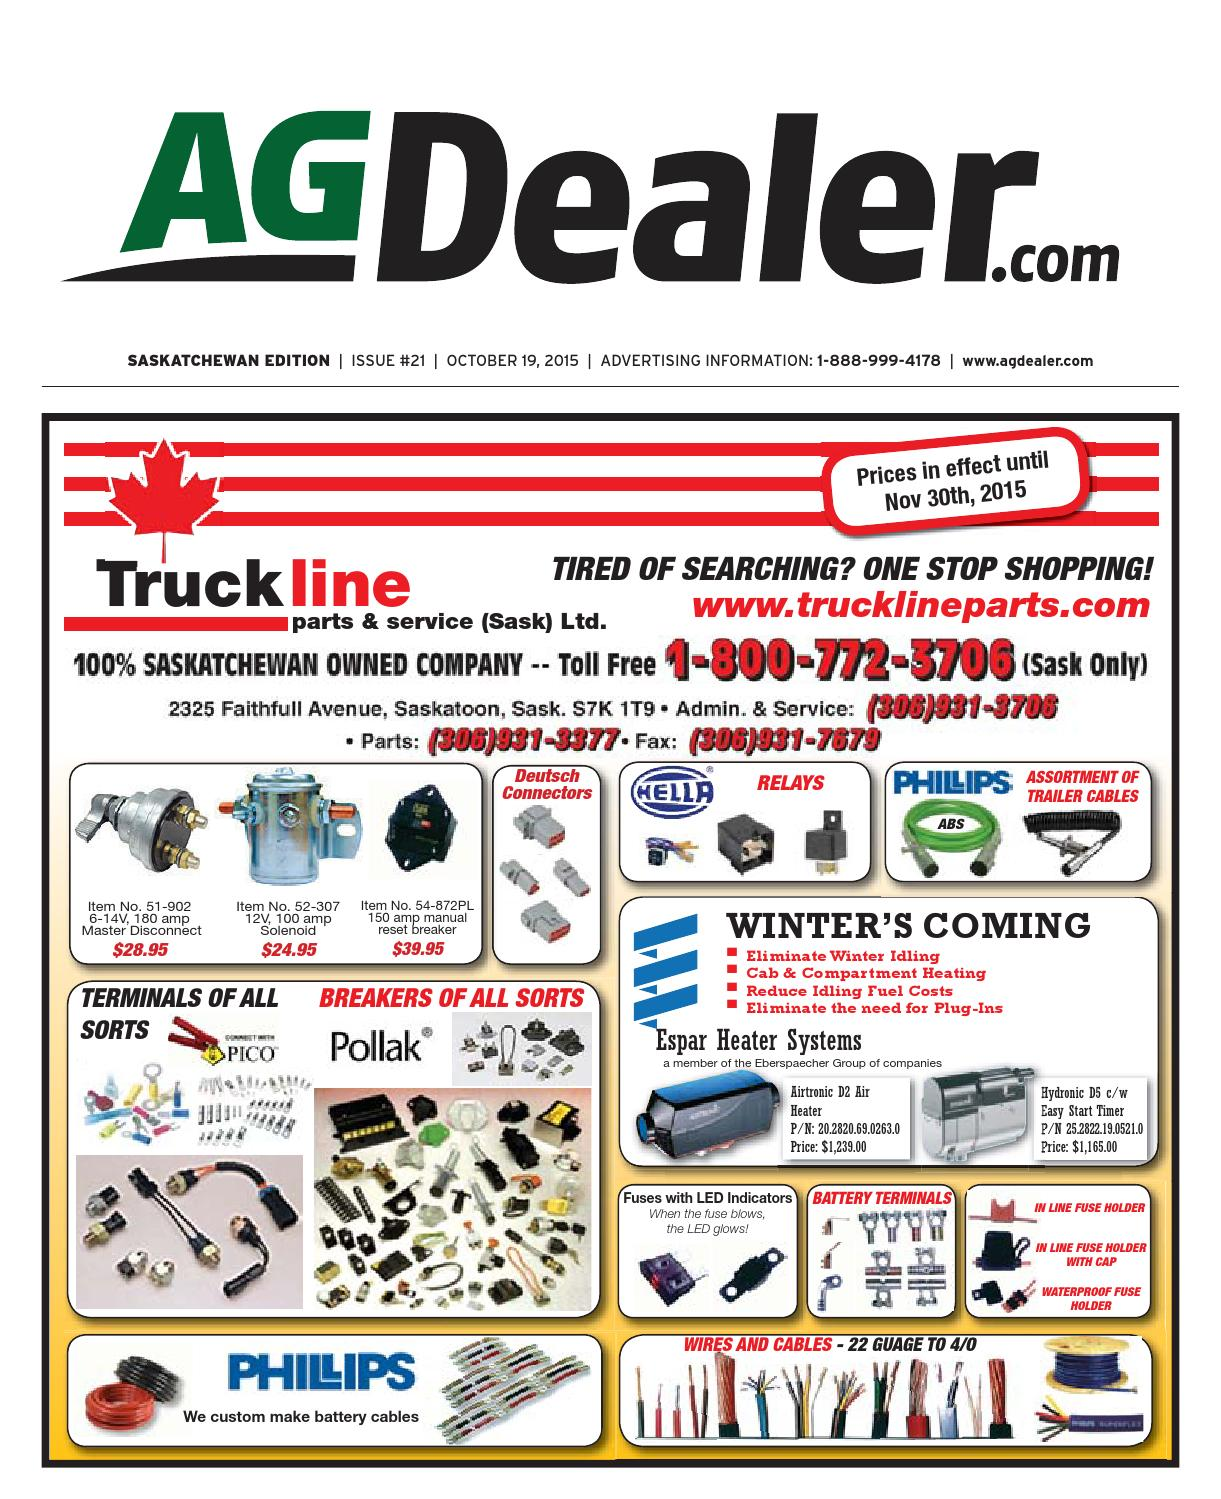 Wheel Amp Deal Saskatchewan October 19 2015 By Farm Business Fuse Box Duluth Ga Communications Issuu